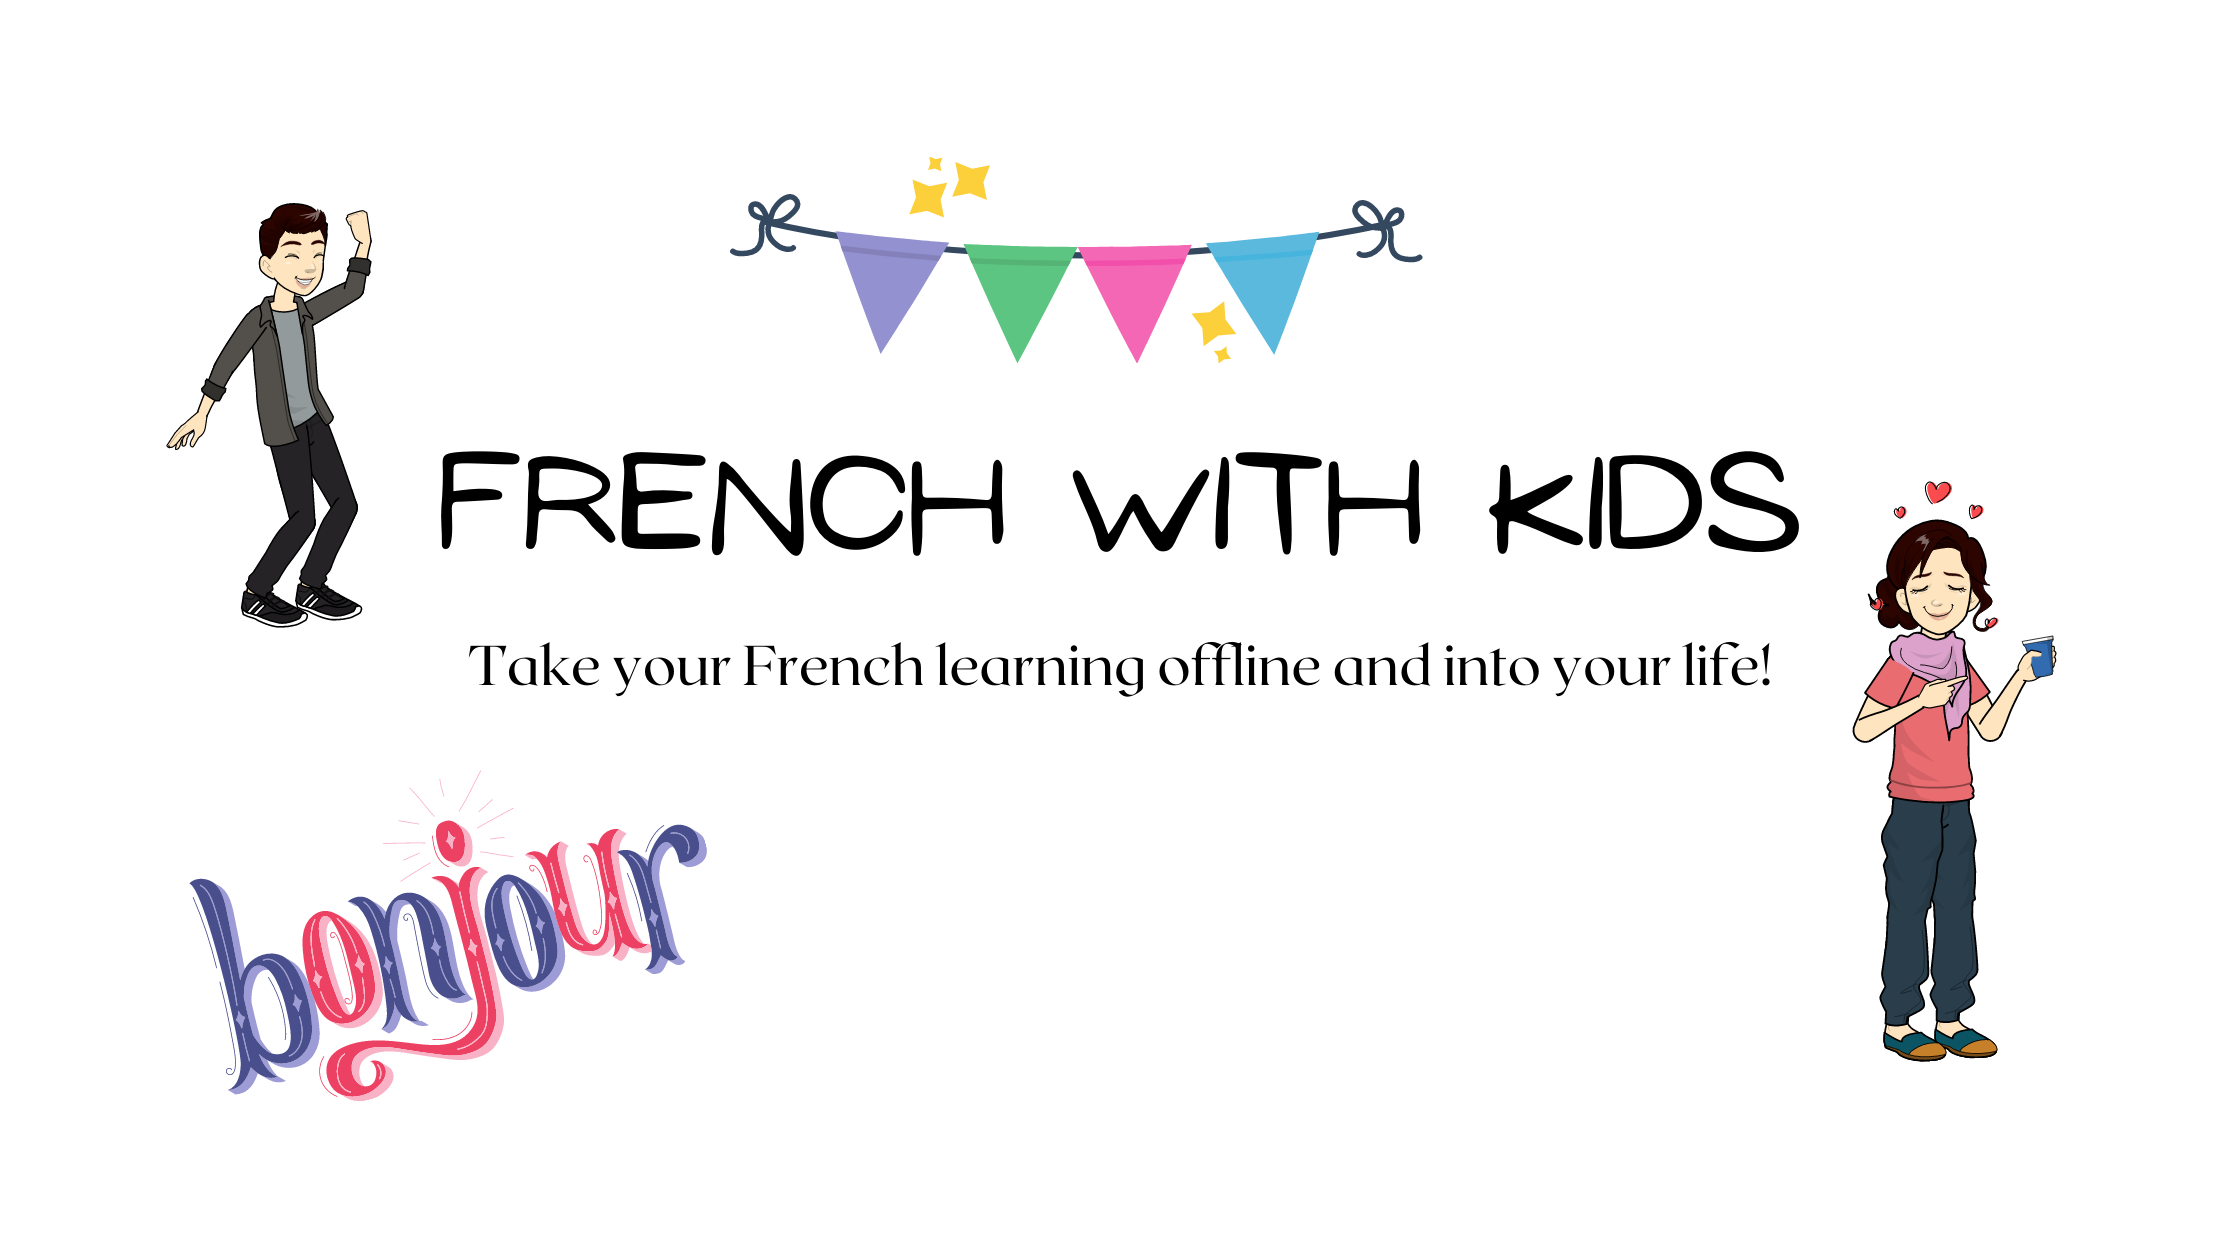 Home language learning French